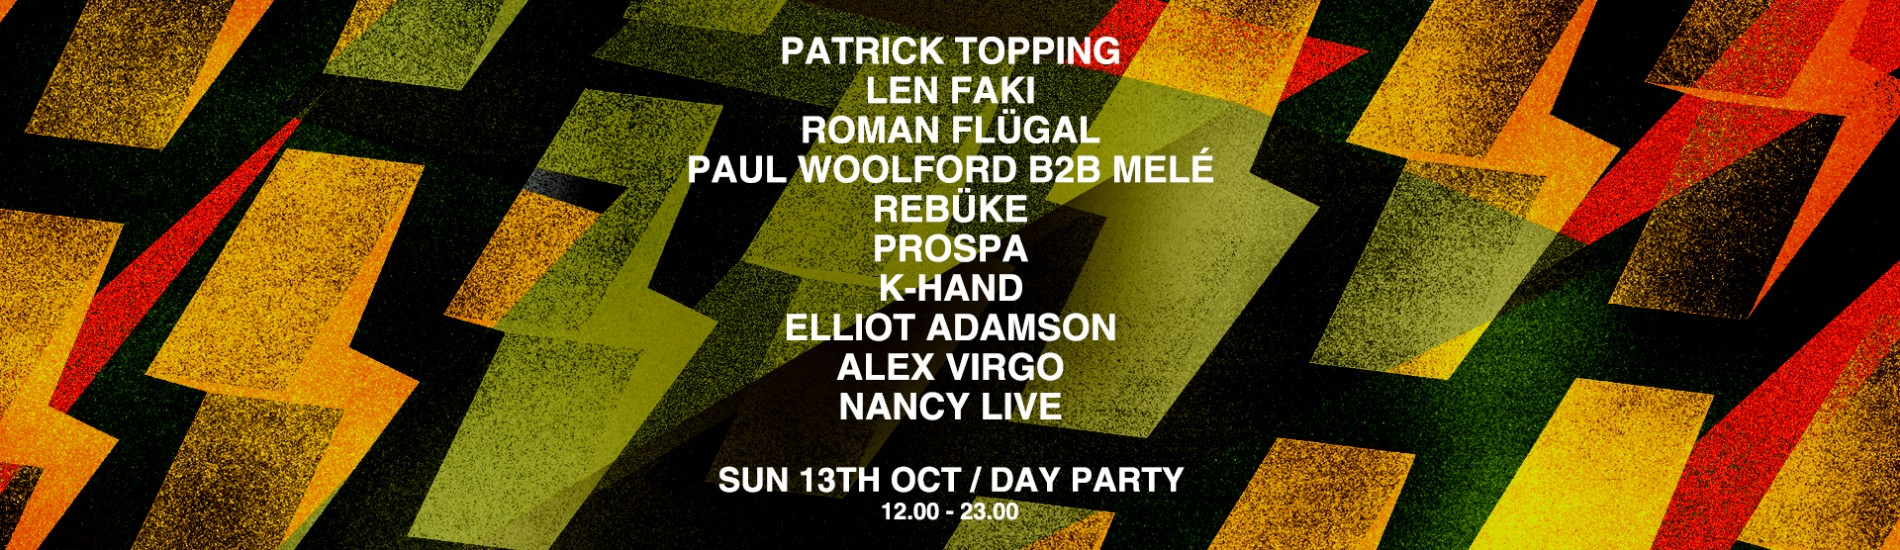 Patrick Topping Presents Trick